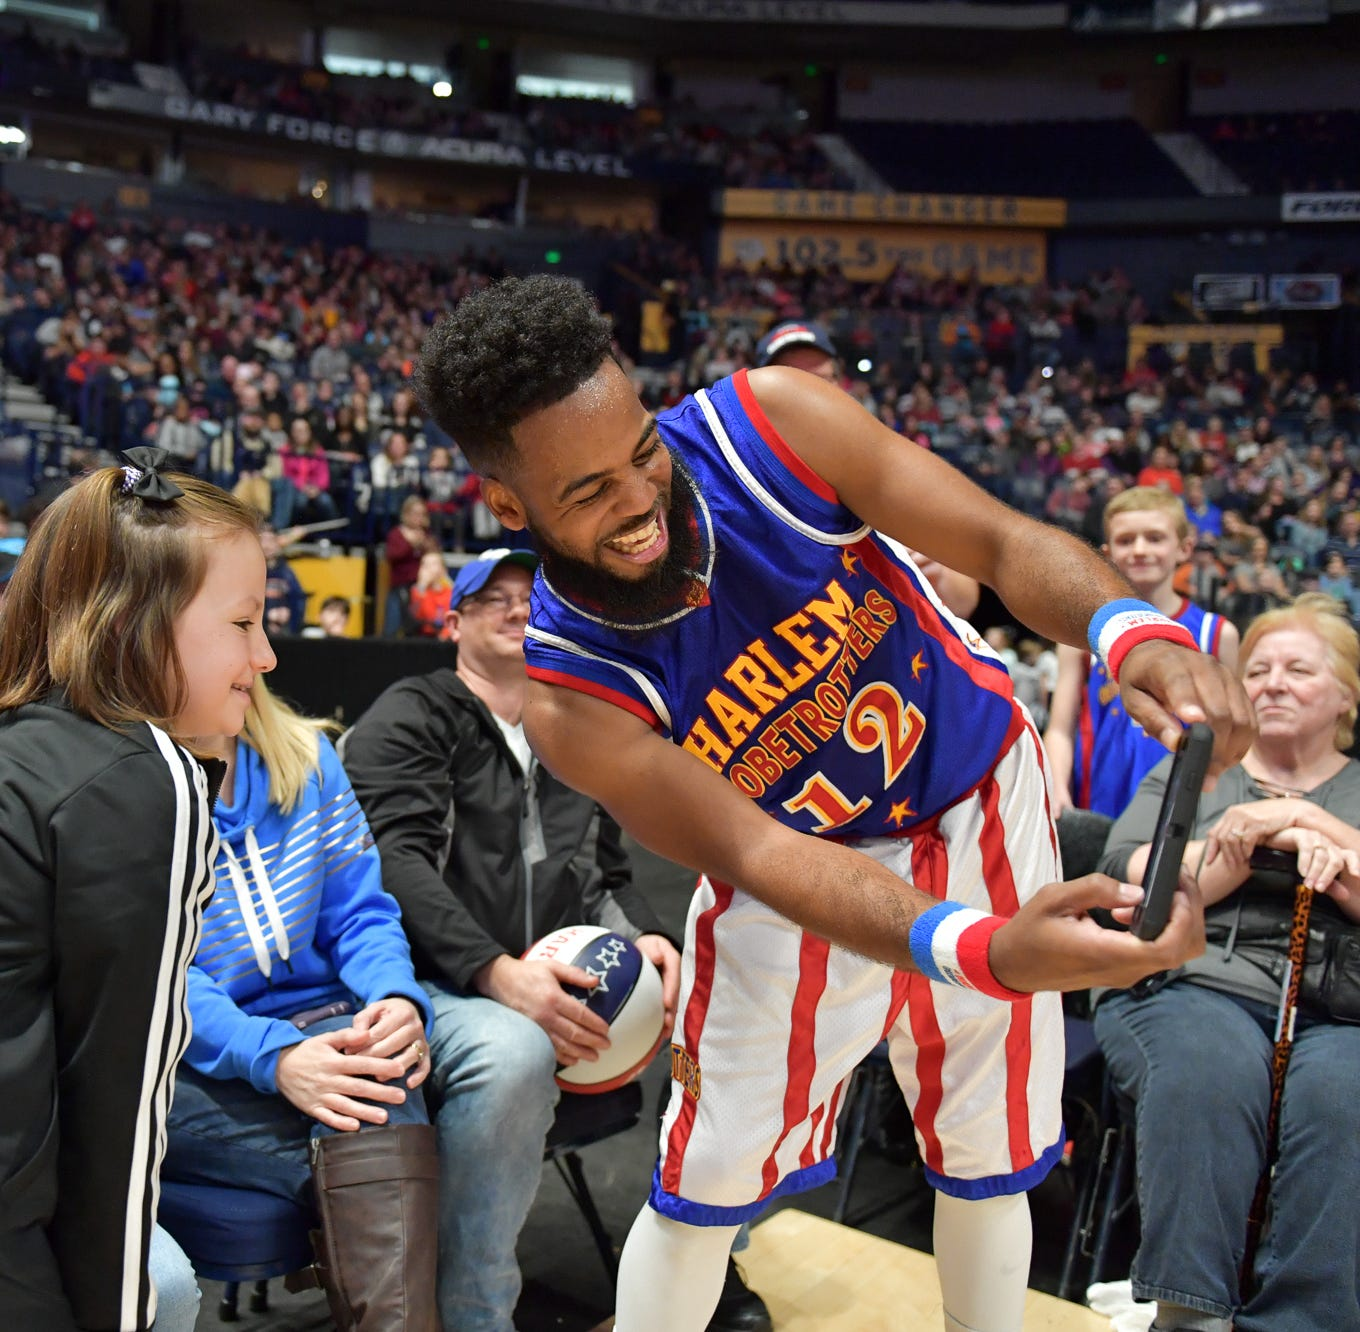 Harlem Globetrotters to spring into action in Salisbury